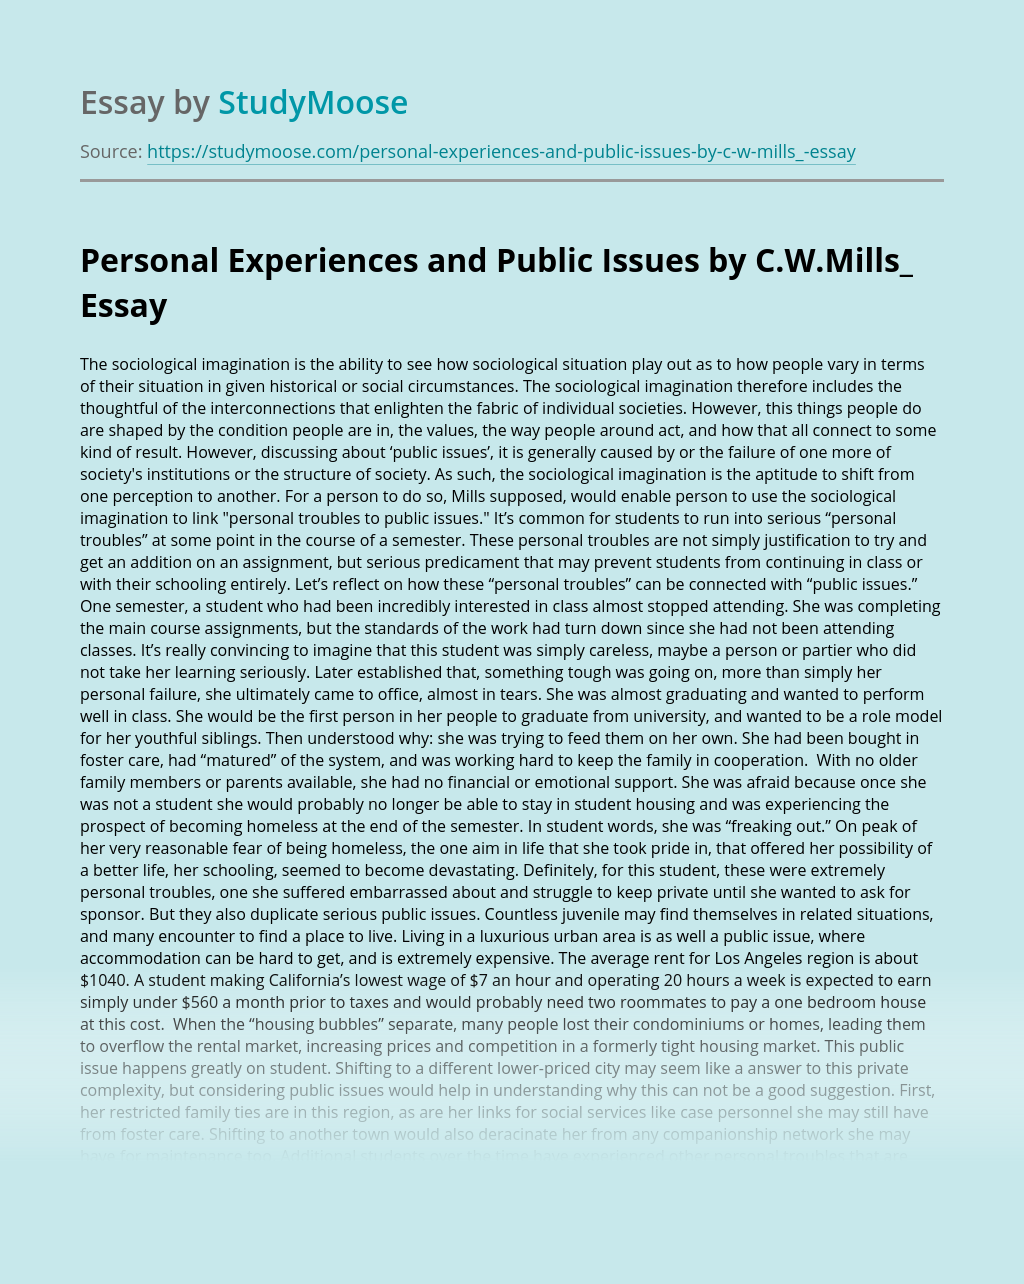 Personal Experiences and Public Issues by C.W.Mills_